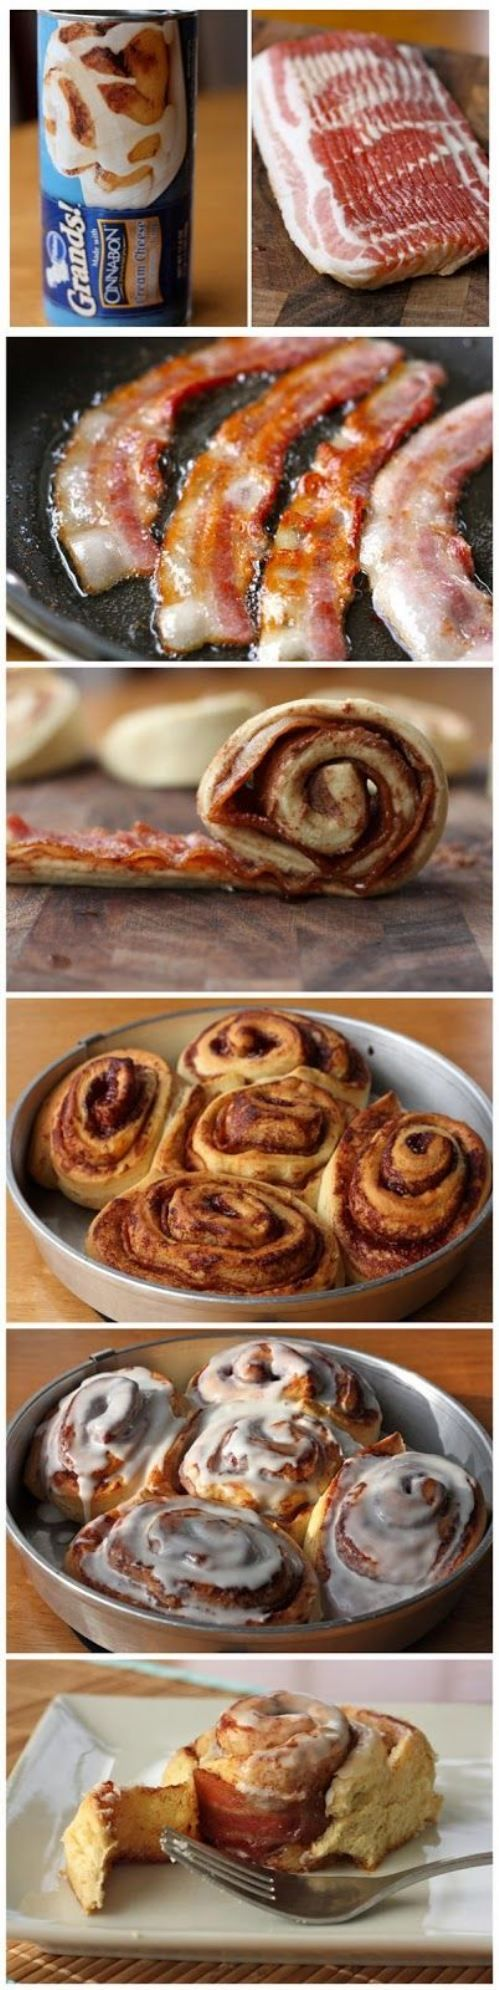 Bacon cinnamon rolls - Amazing! I have GOT to try this!!